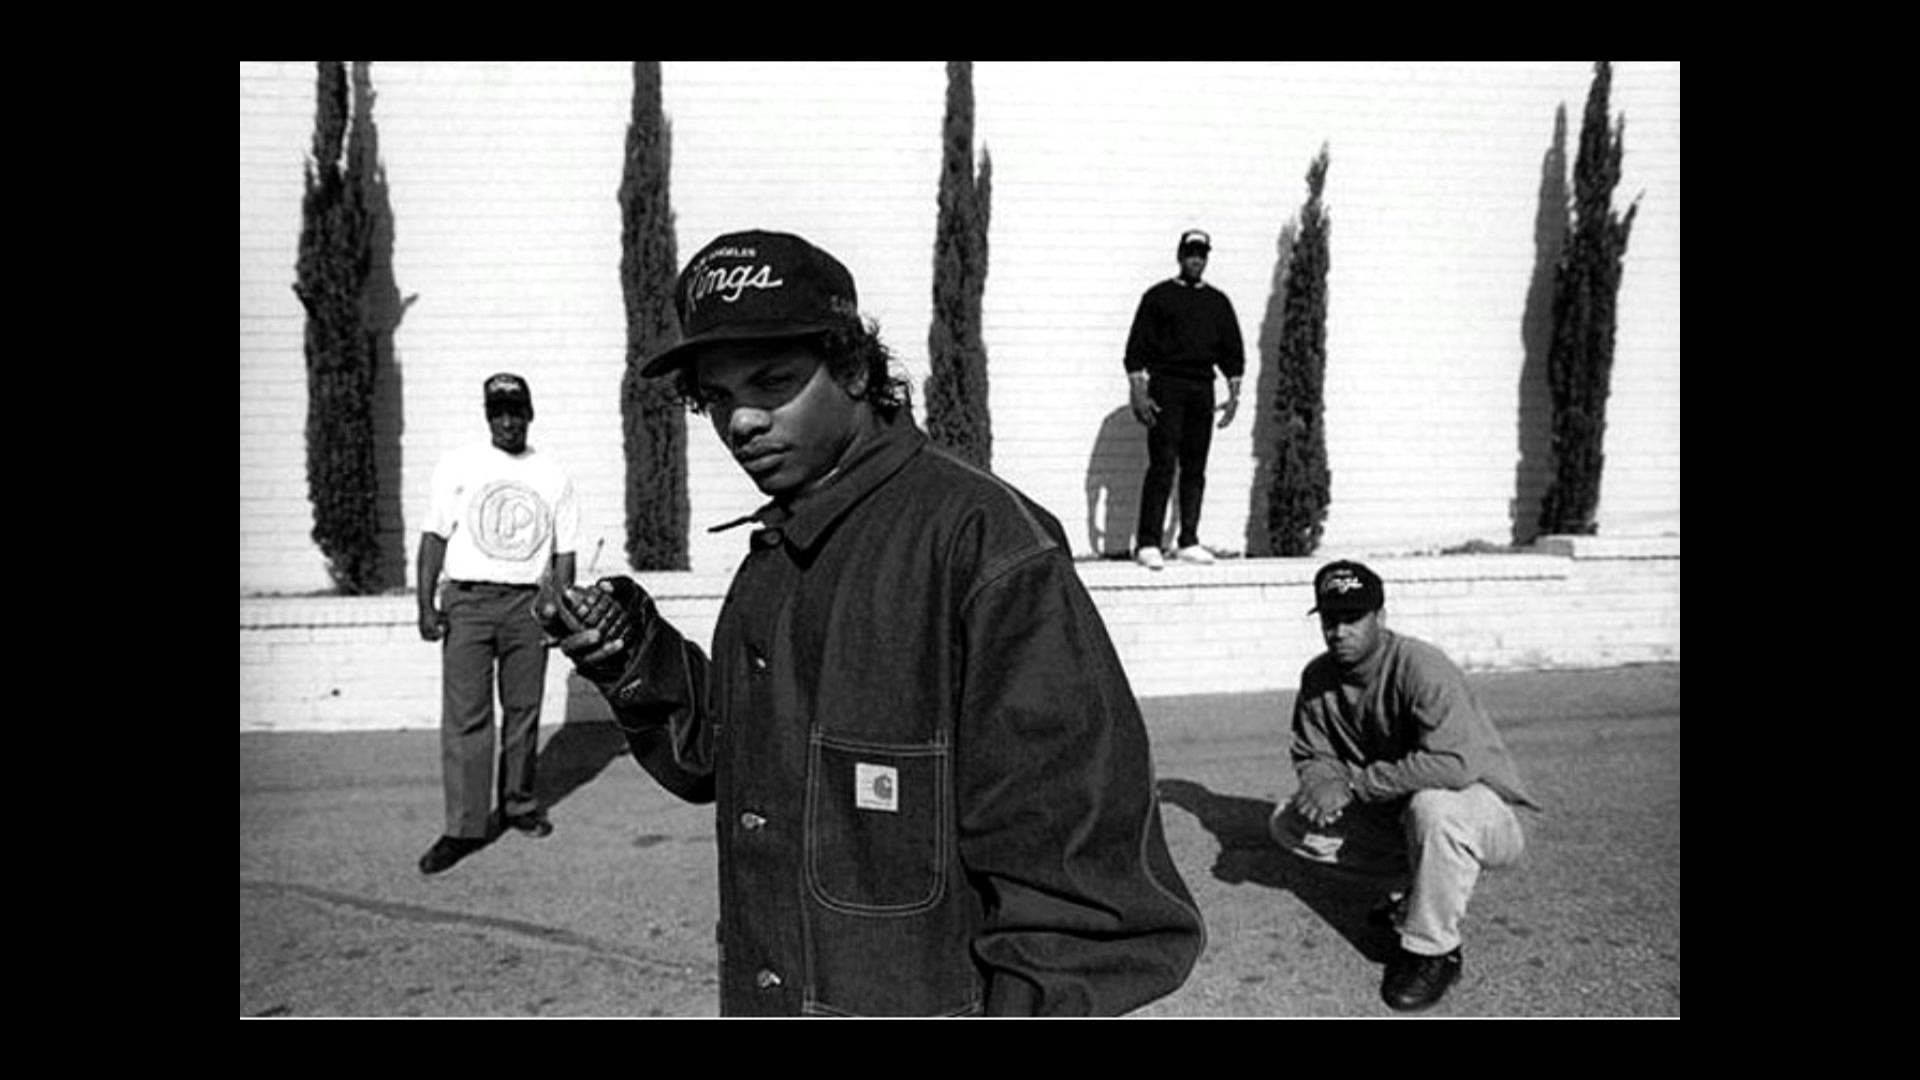 Eazy E nwa gangsta rapper rap hip hop eazy-e d wallpaper background